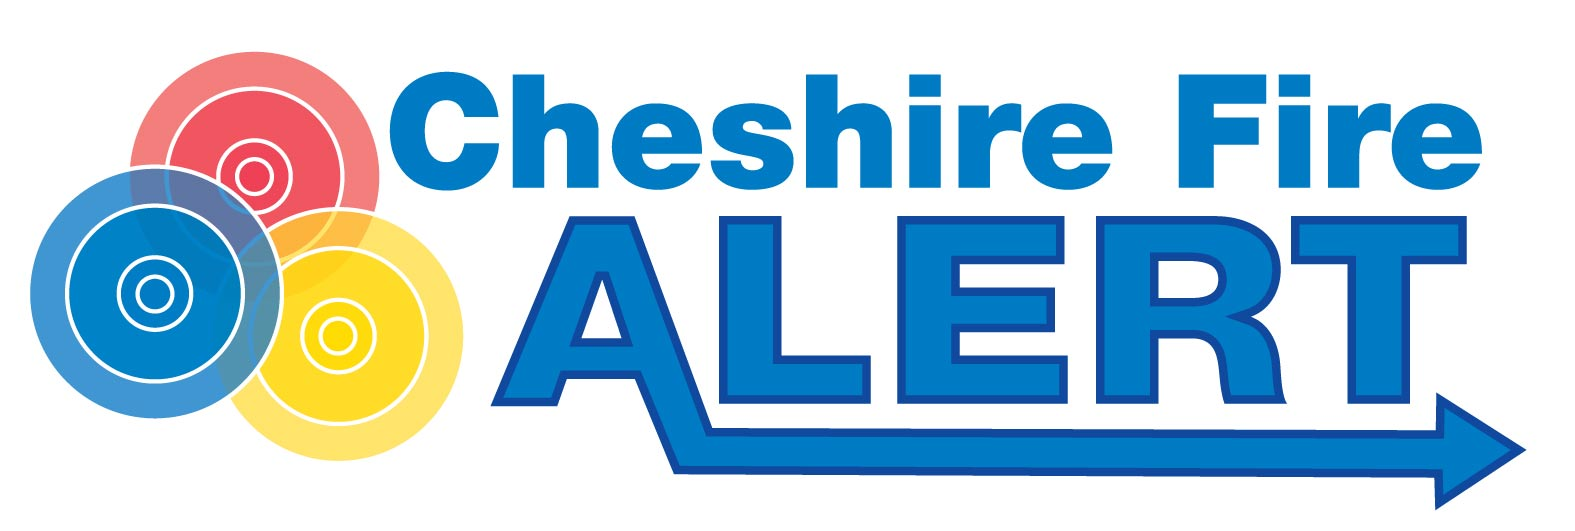 New Messaging System Launched Cheshire Fire Alert